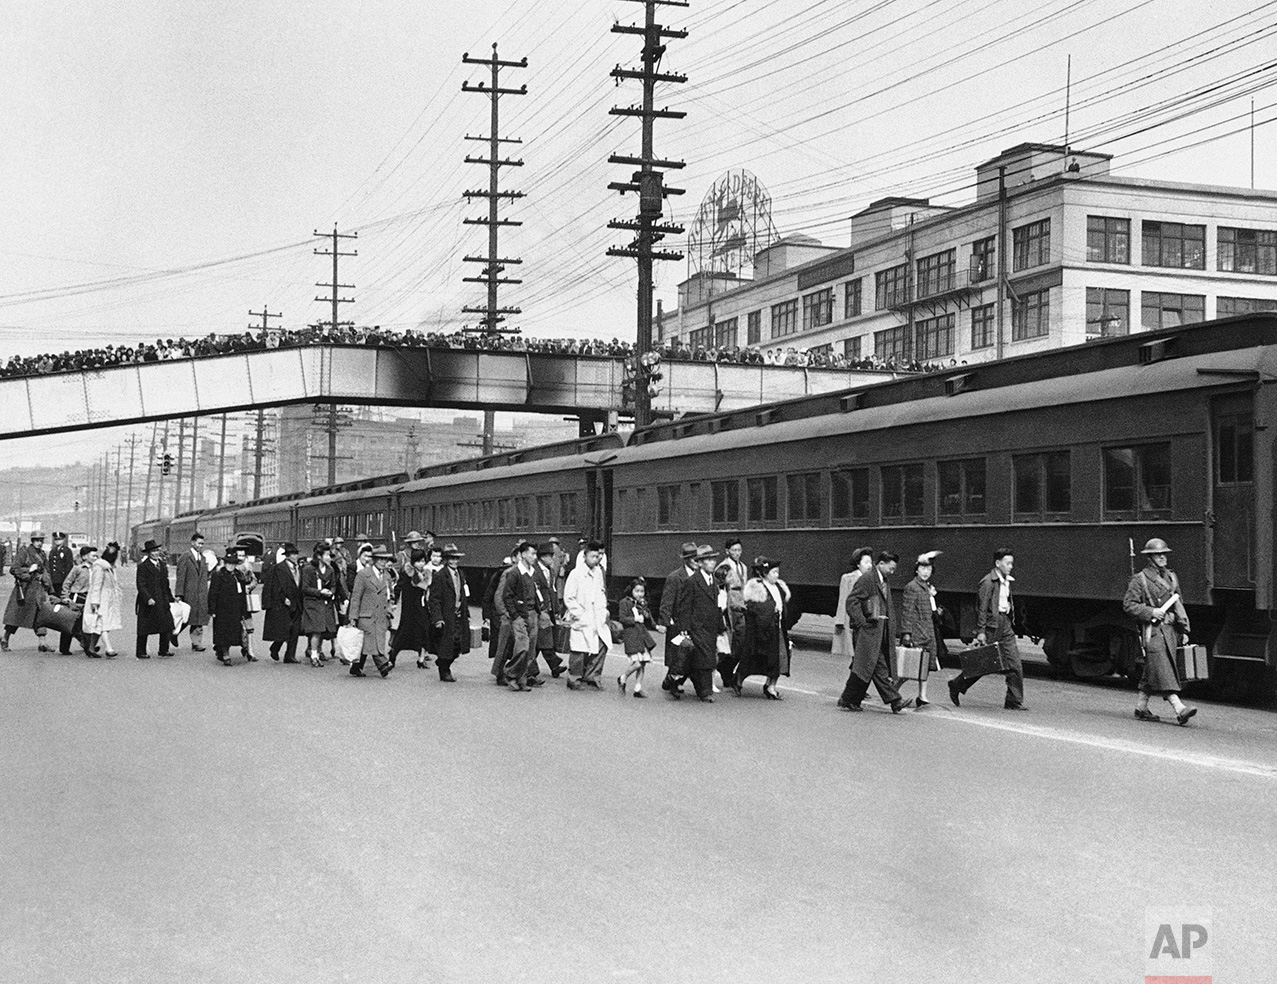 Seattle crowds jam an overhead walk to witness mass evacuation of Japanese from Bainbridge Island, Washington, March 30, 1942. Somewhat bewildered, but not protesting, some 225 Japanese men, women and children were taken by ferry, bus and train to California internment camps. Evacuation was carried out by the army. (AP Photo)